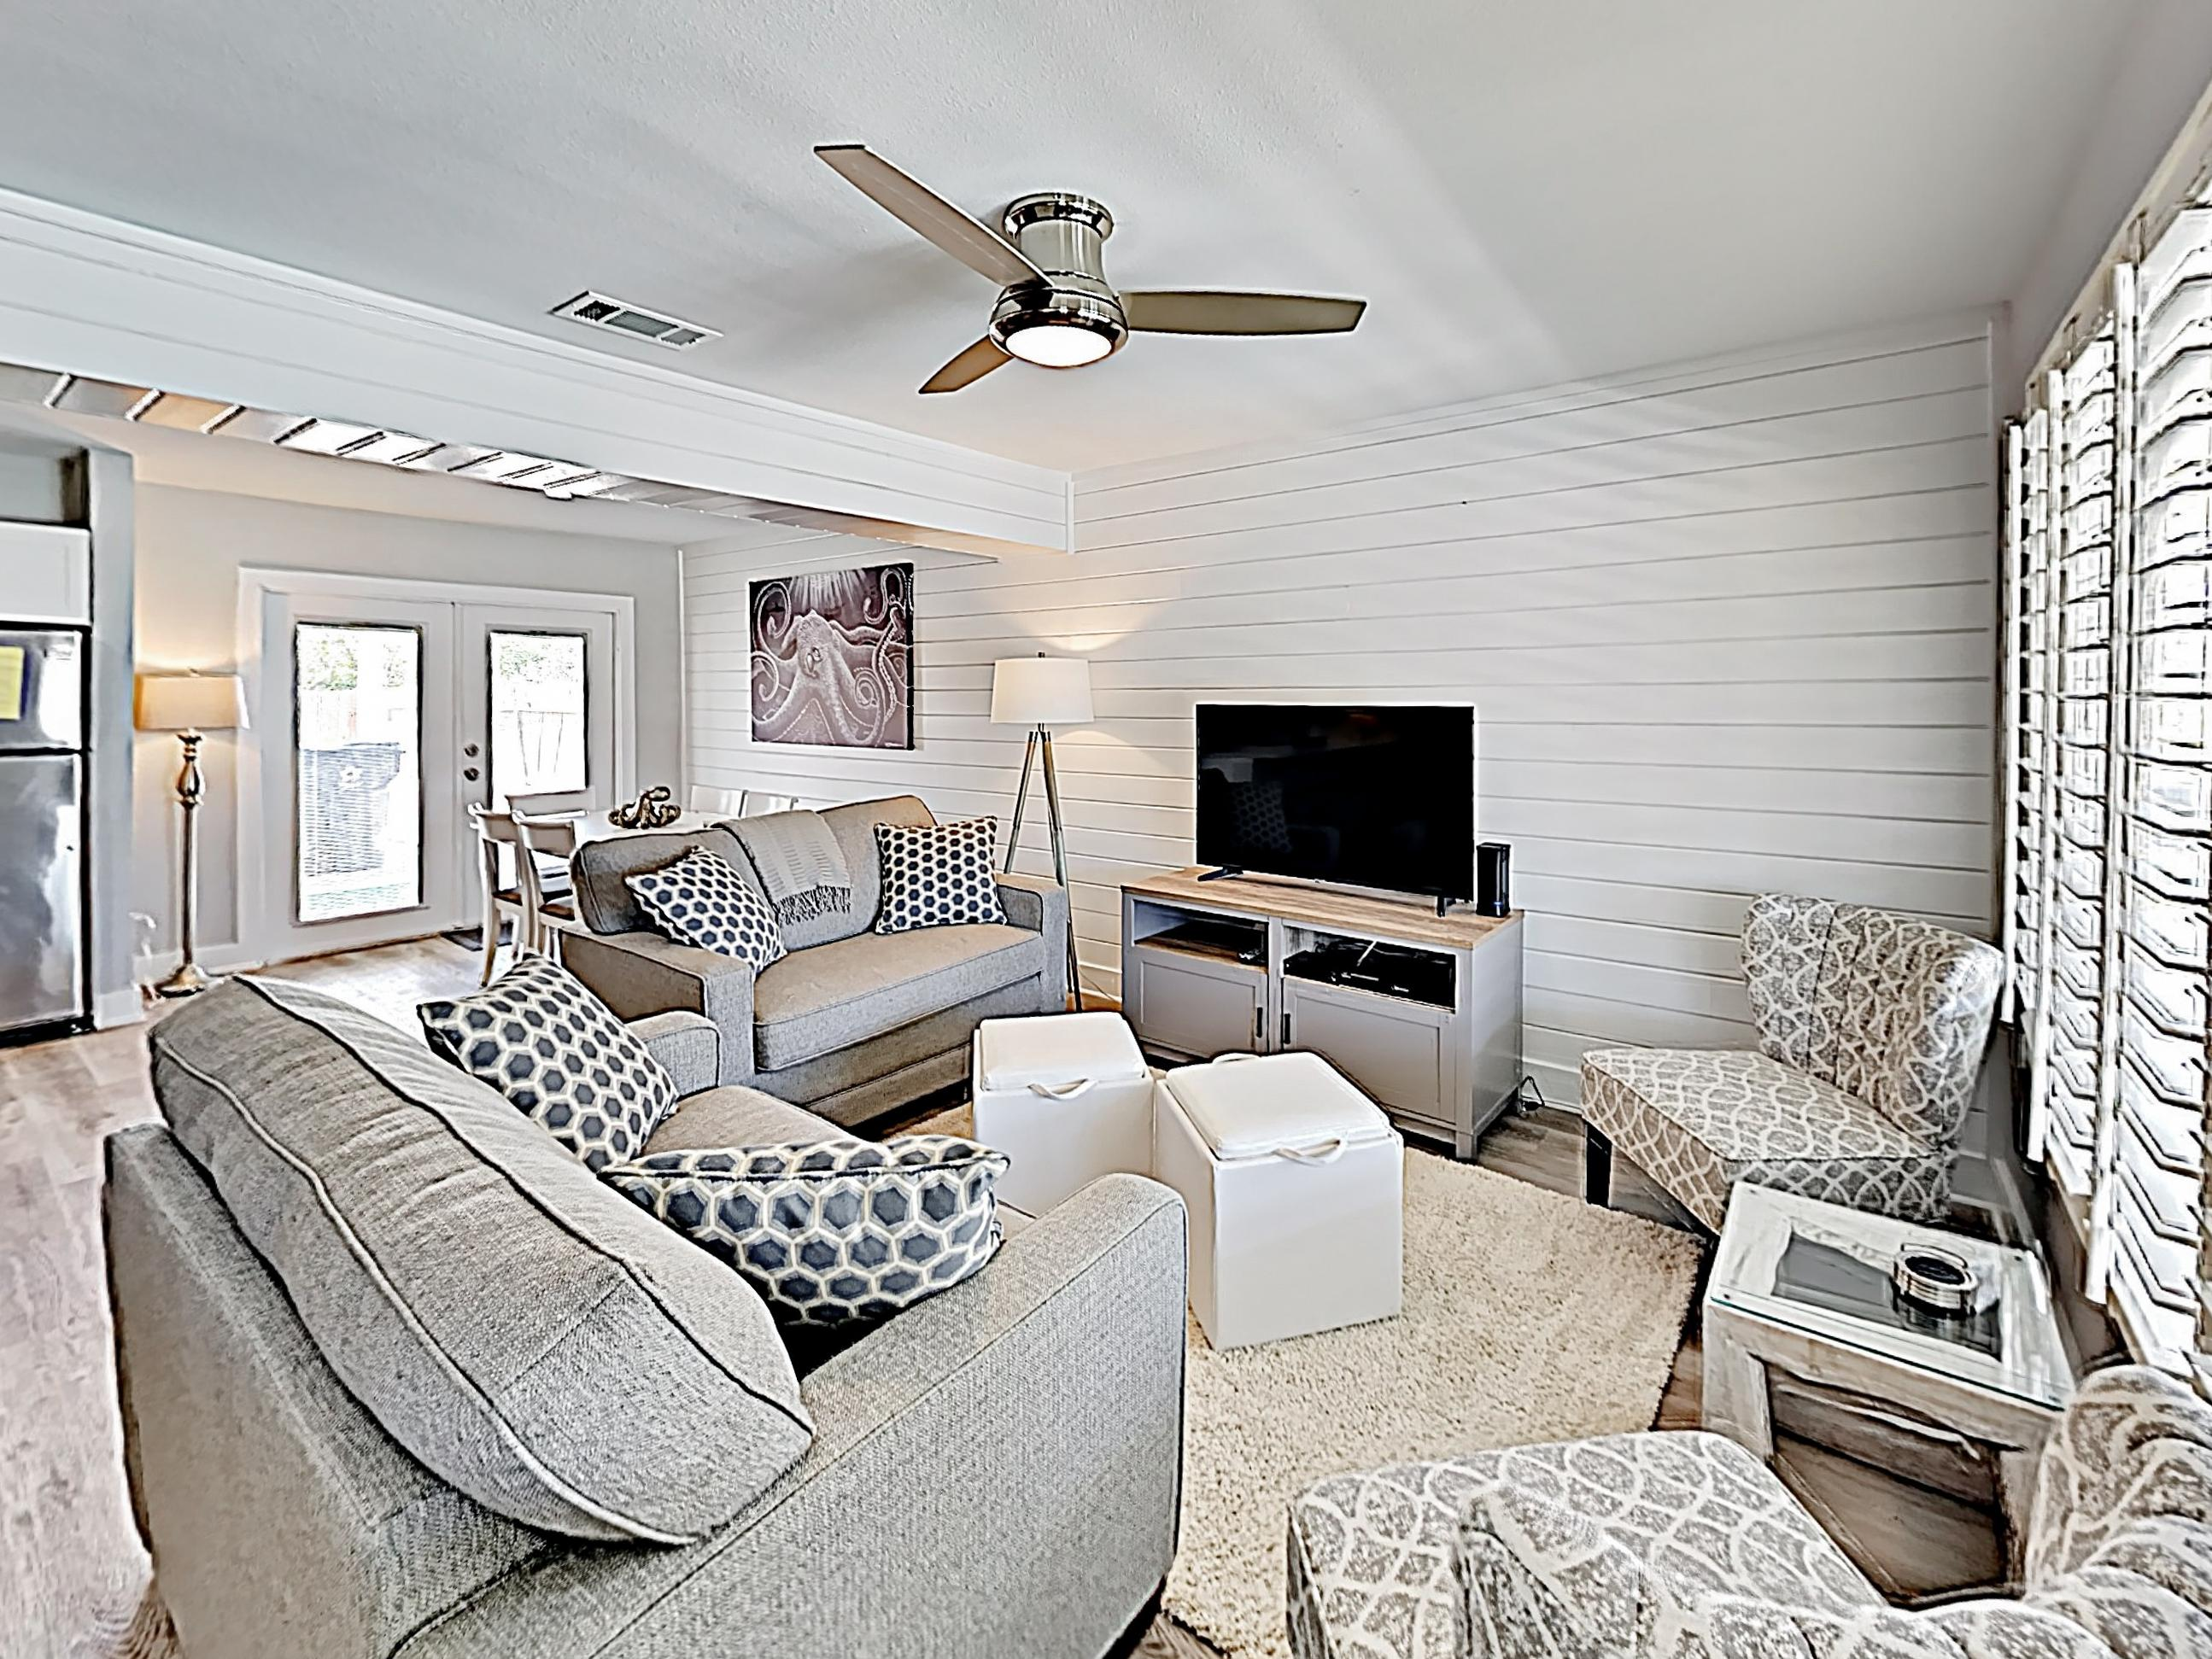 The modern living room is detailed with a cool grey palette and shiplap walls.